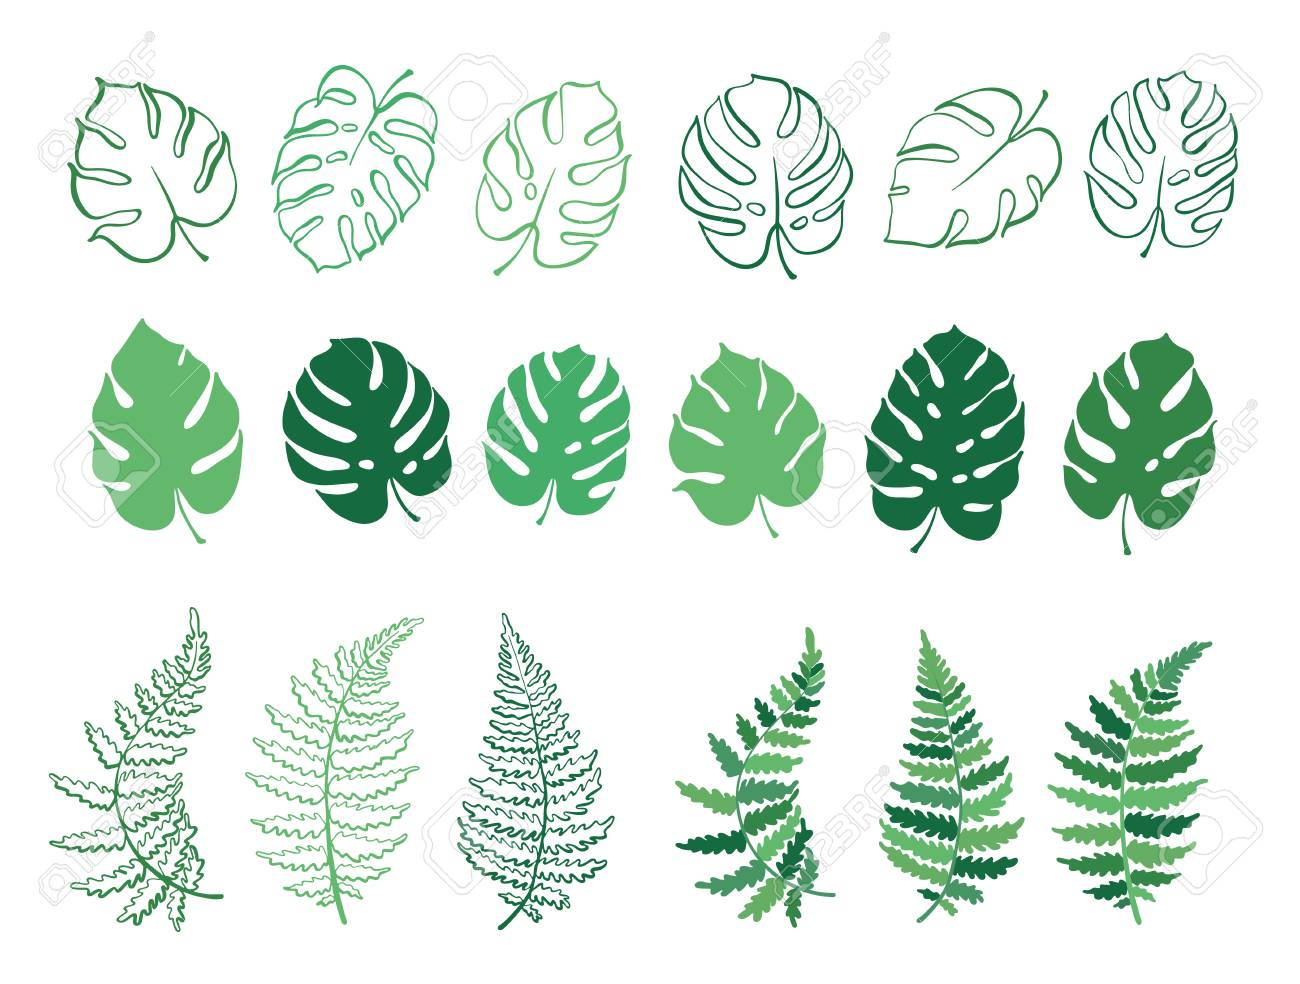 Vector Botanical Illustration Of Fern And Monstera Leaf Isolated Royalty Free Cliparts Vectors And Stock Illustration Image 101686777 Seamless background with autumn leaves. vector botanical illustration of fern and monstera leaf isolated